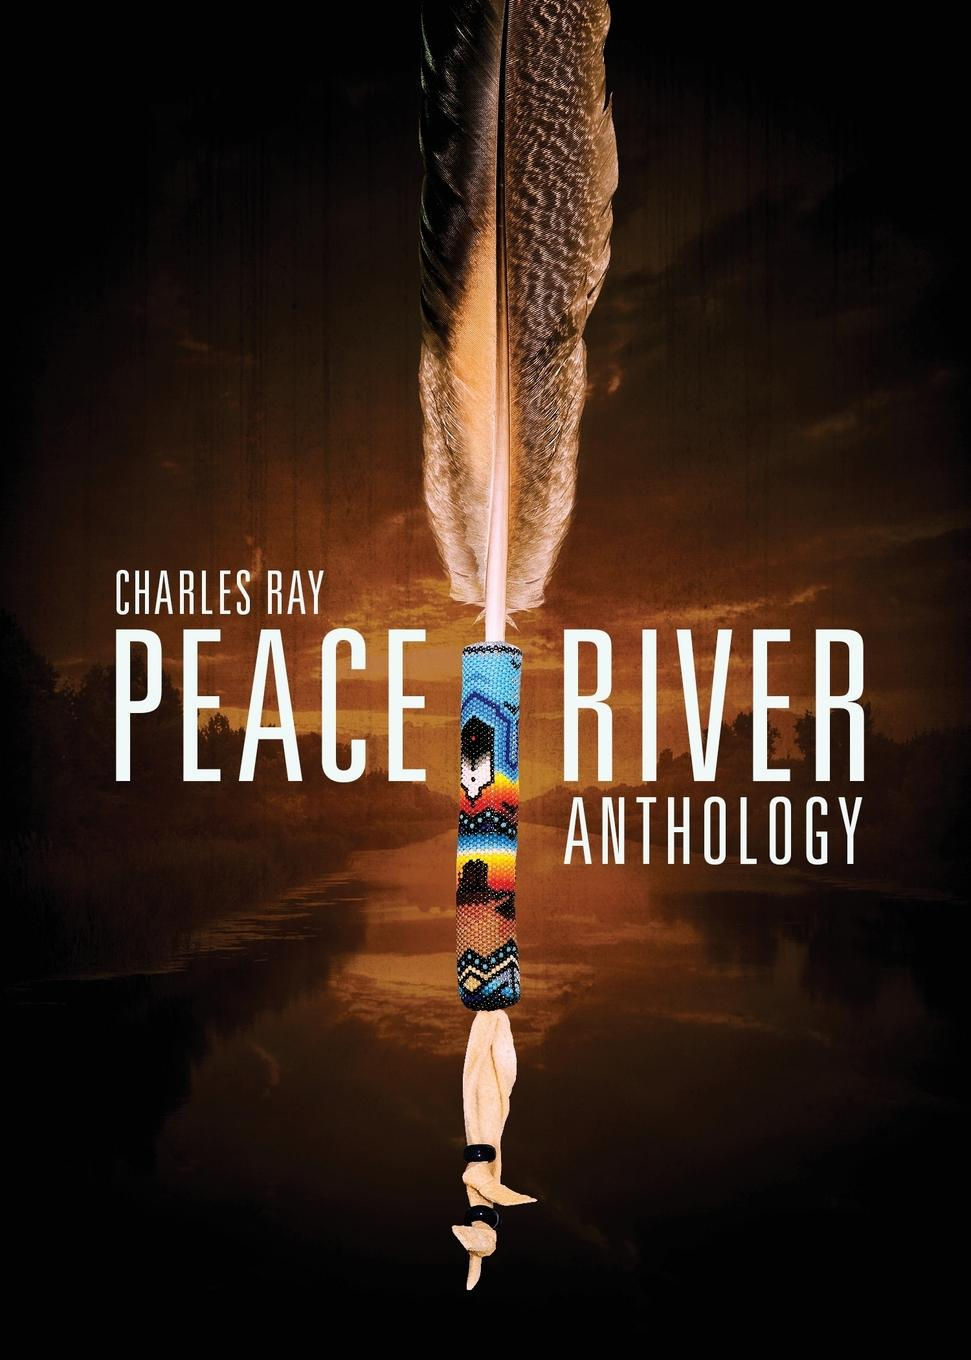 Charles Ray Peace River Anthology an interpretive analysis of selected peace activists